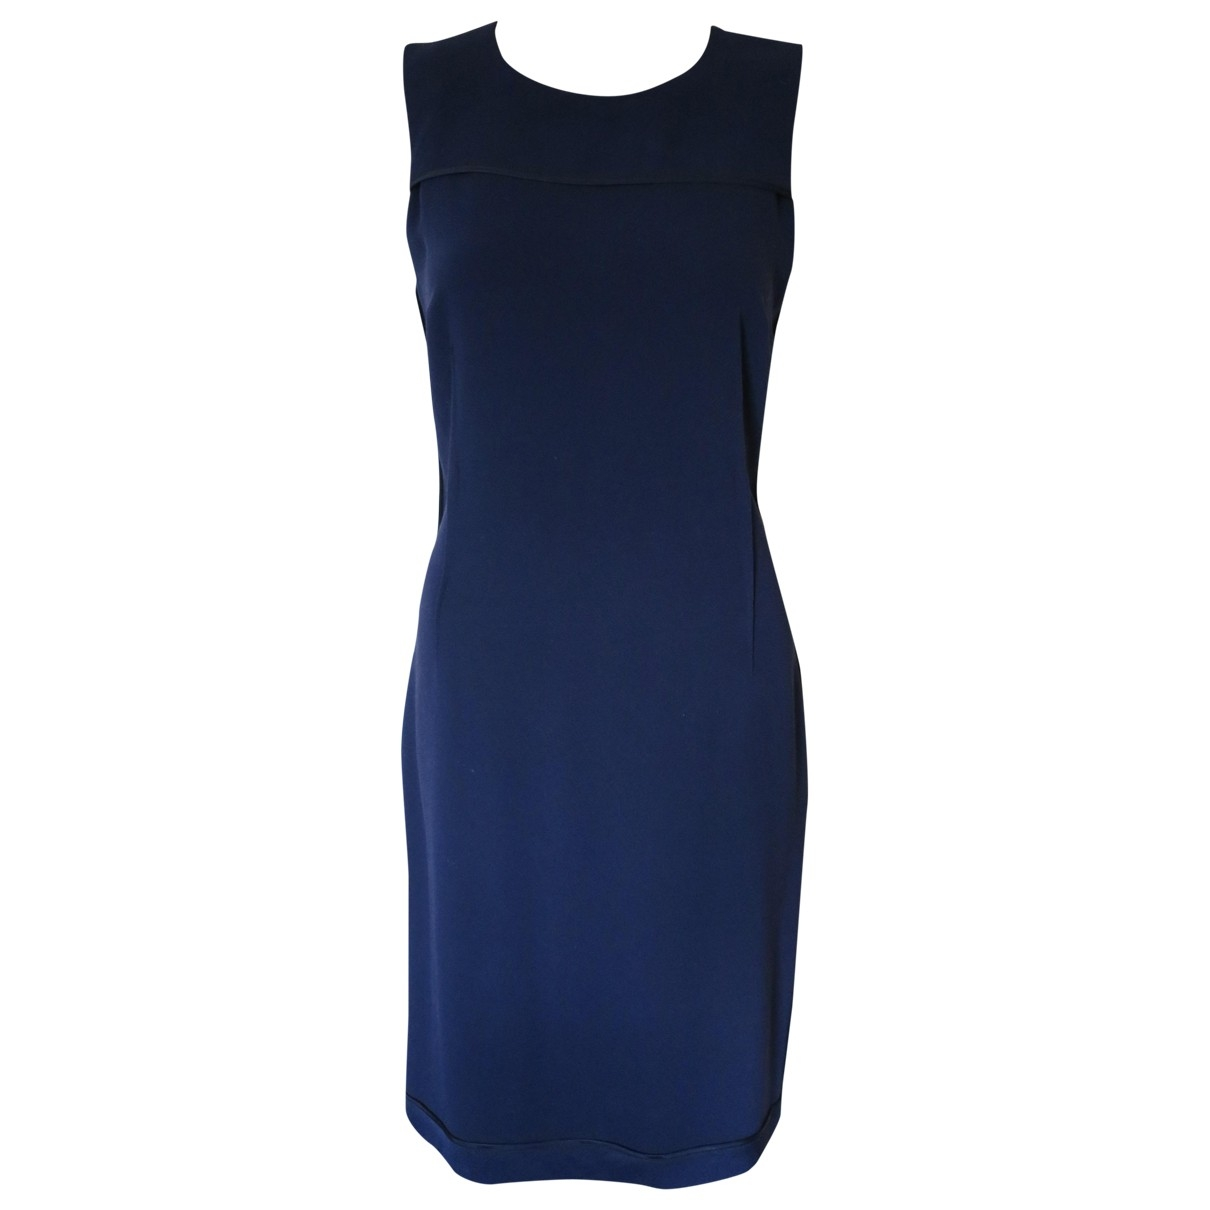 Joseph \N Blue dress for Women 38 FR